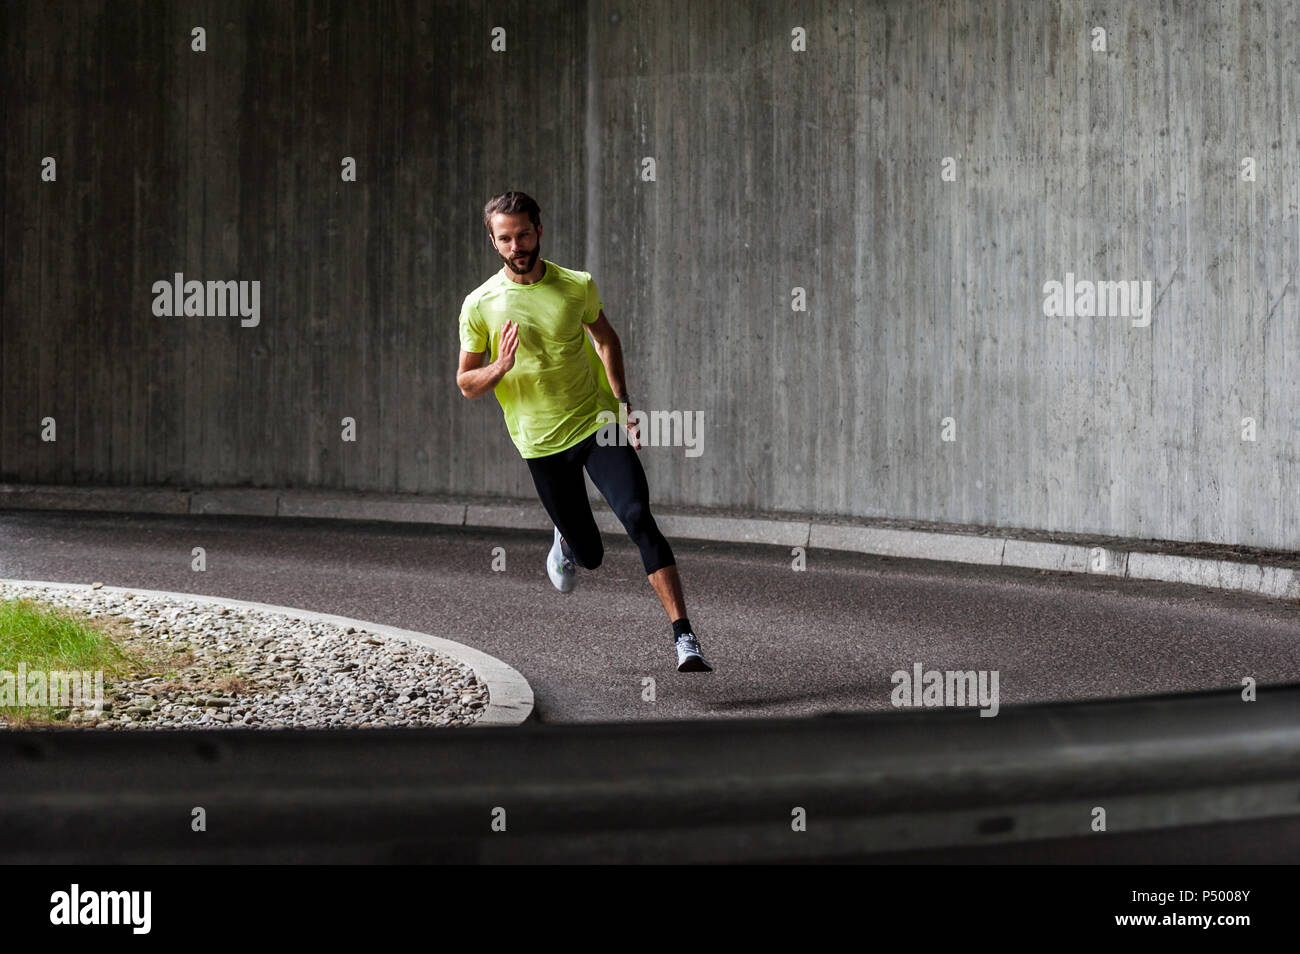 Man running on a street in a curve - Stock Image